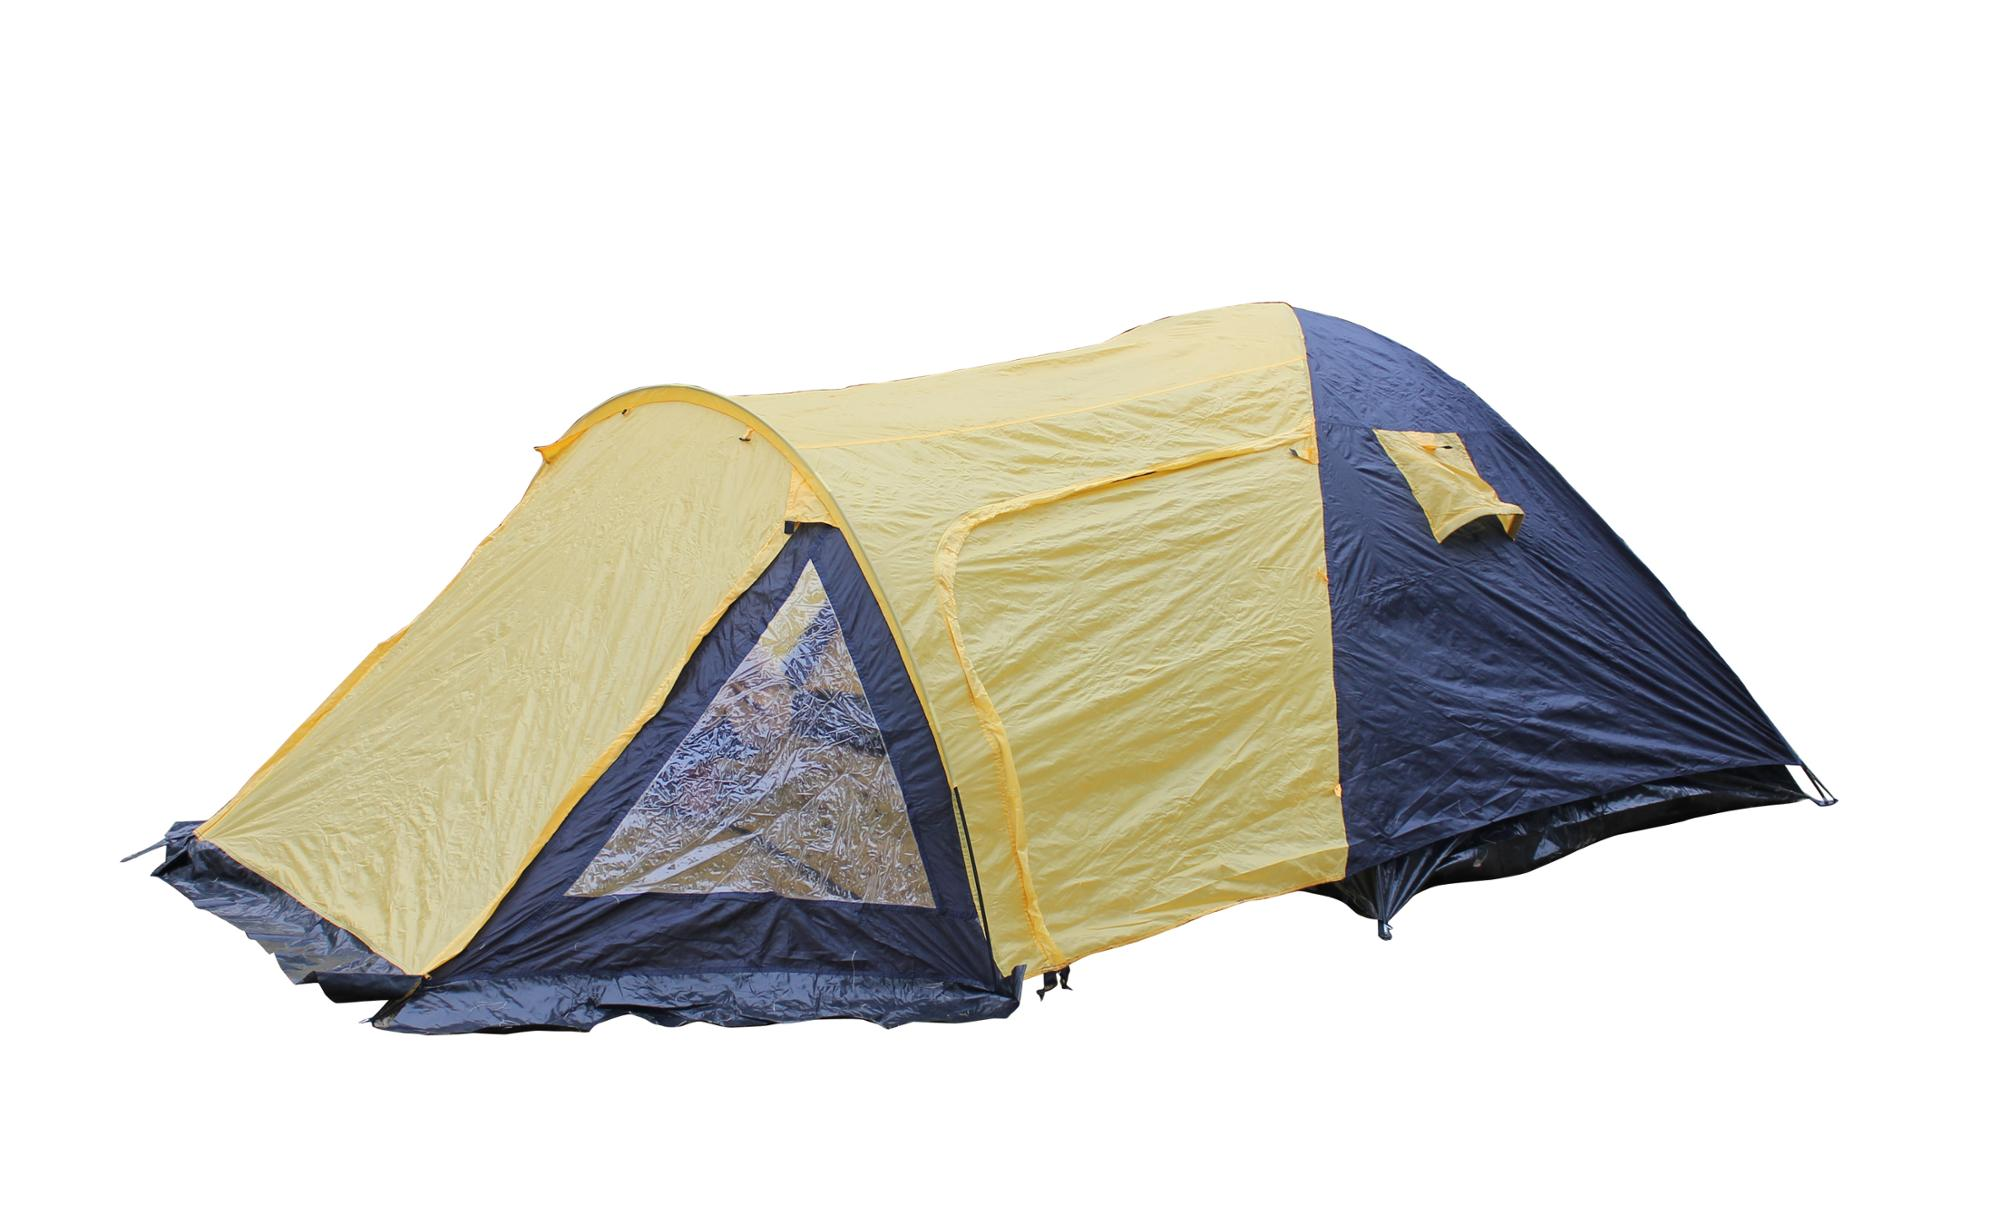 4 person heavy duty camping tent